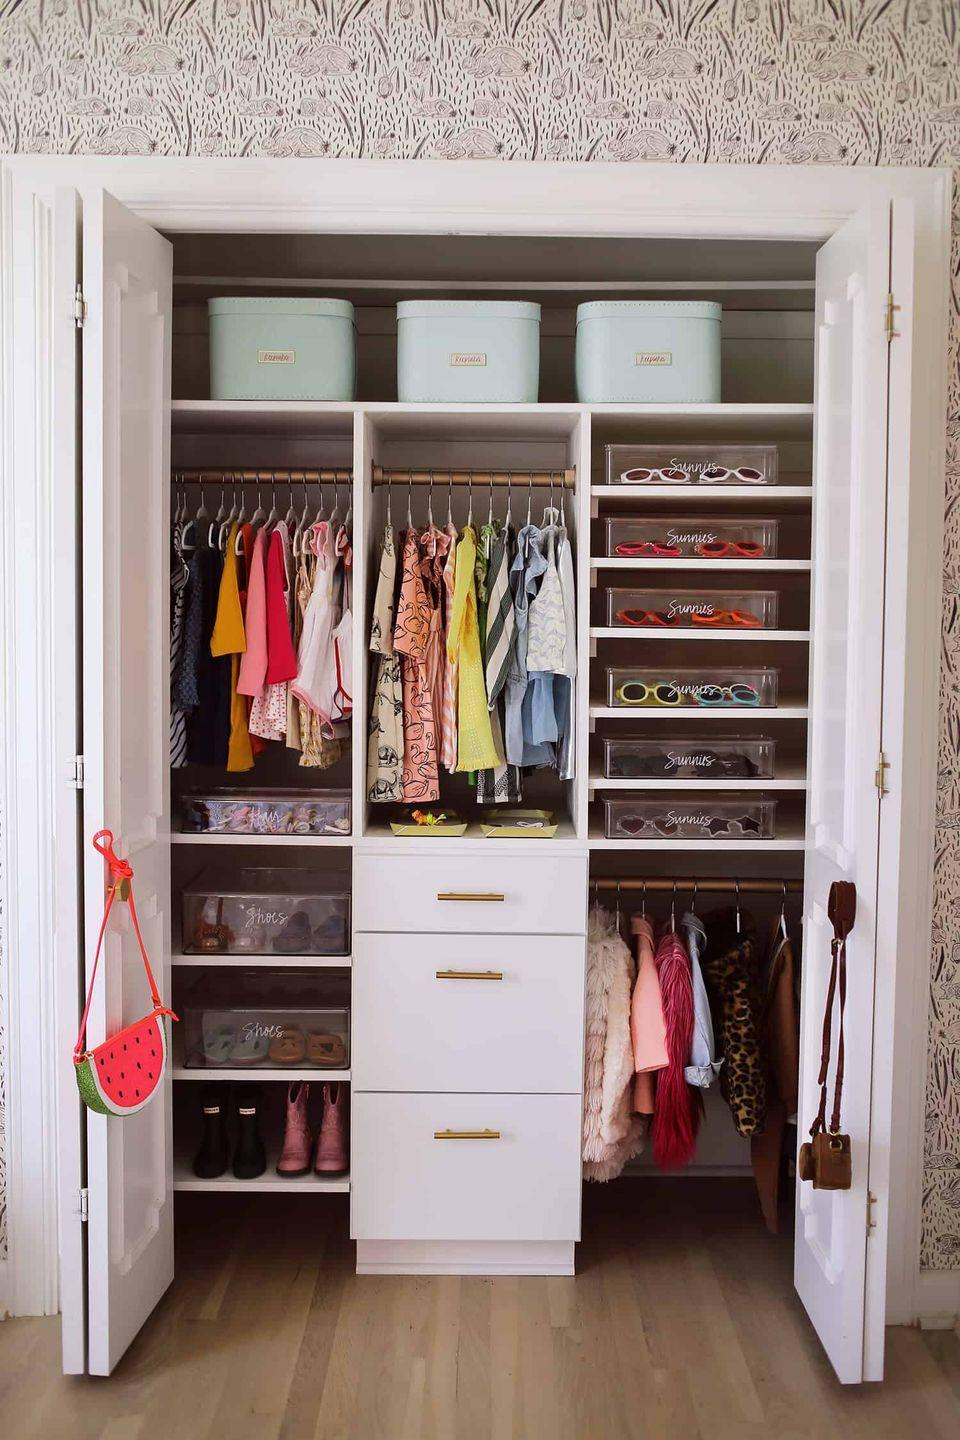 "<p>If you use bins or baskets to keep smaller items and accessories corralled, be sure to label everything clearly, so you know exactly where to find what you need. It's also a great way to keep track of baby clothes, since you can label all of the different sizes within the drawers. </p><p>See more at <a href=""https://abeautifulmess.com/how-to-organize-a-baby-closet-with-the-home-edit/"" rel=""nofollow noopener"" target=""_blank"" data-ylk=""slk:A Beautiful Mess"" class=""link rapid-noclick-resp"">A Beautiful Mess</a>.</p>"